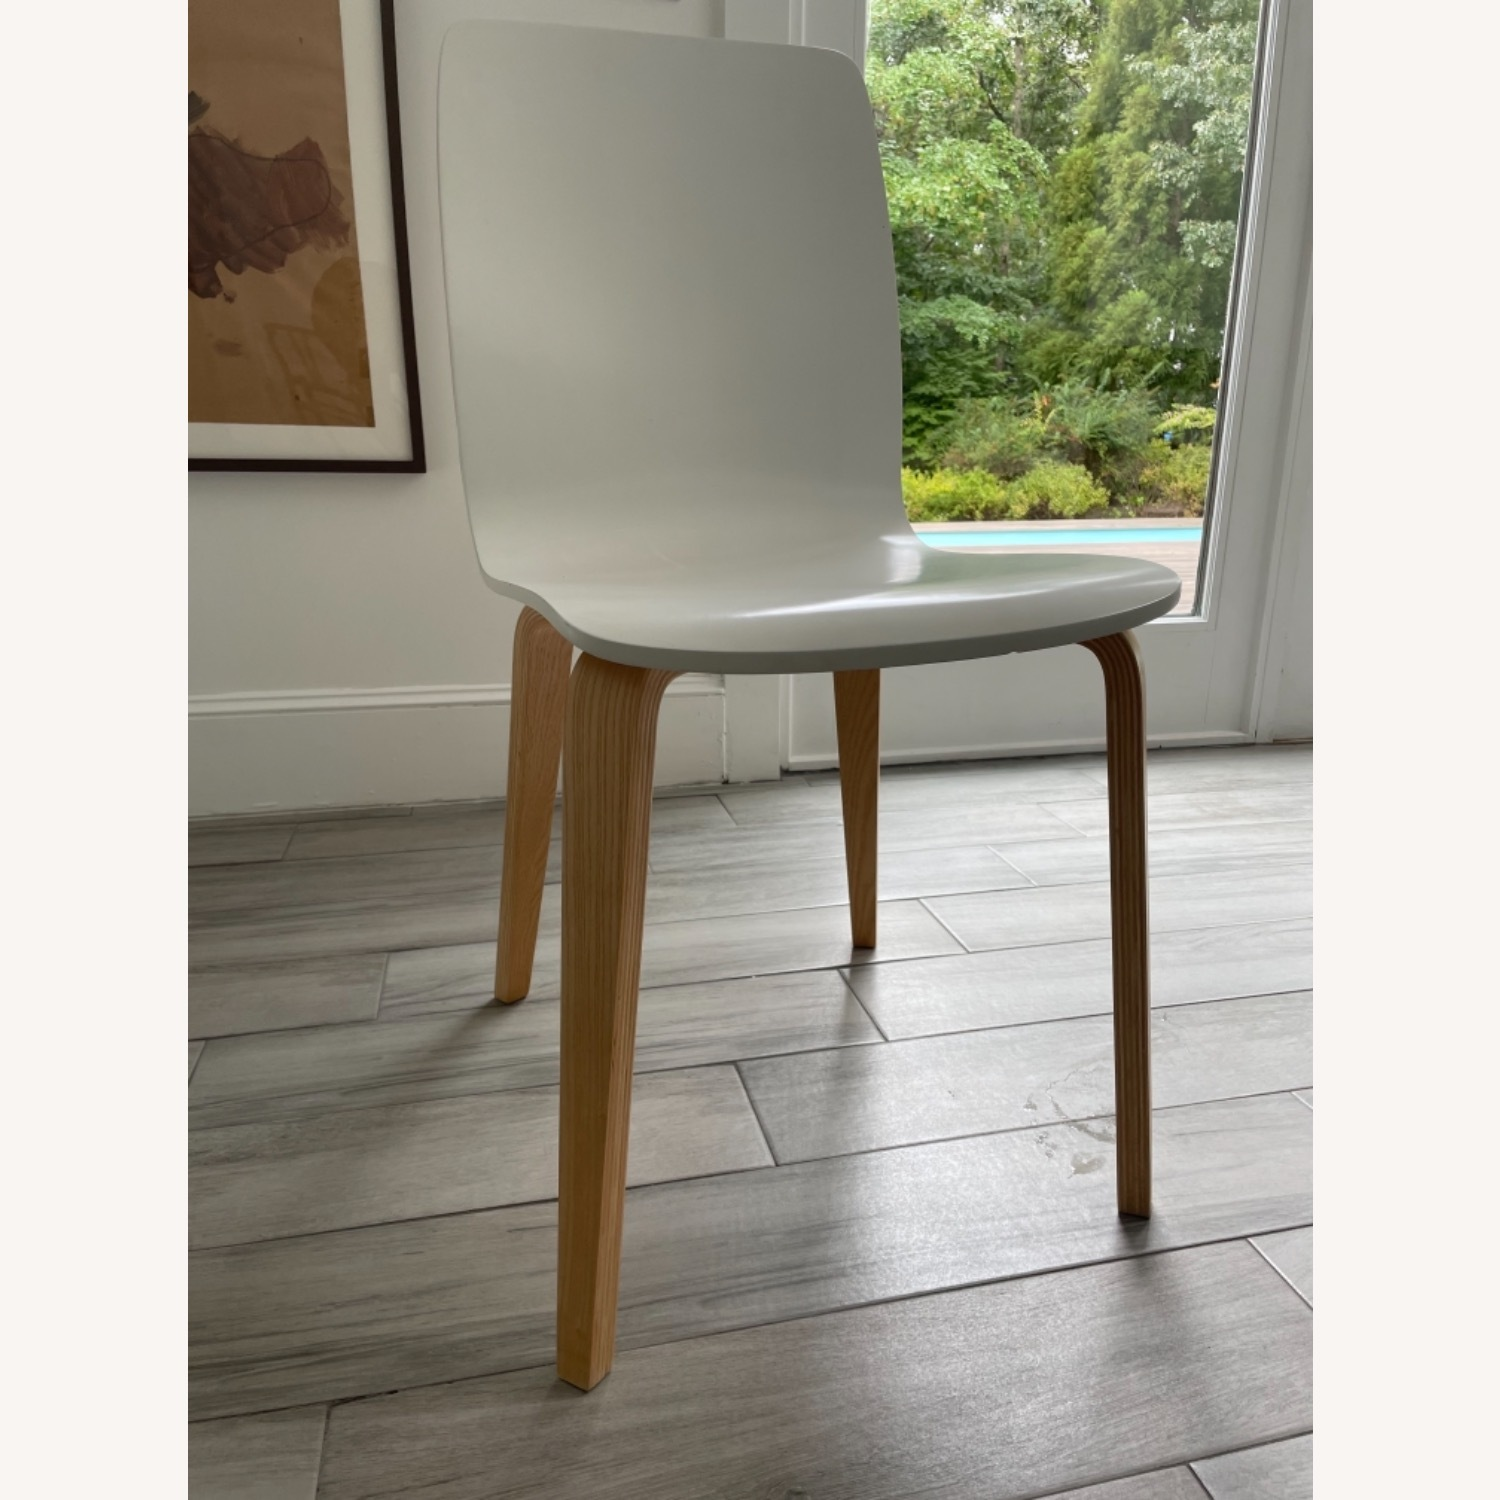 Anthropologie White Tamsin Dining Chairs (4) - image-6